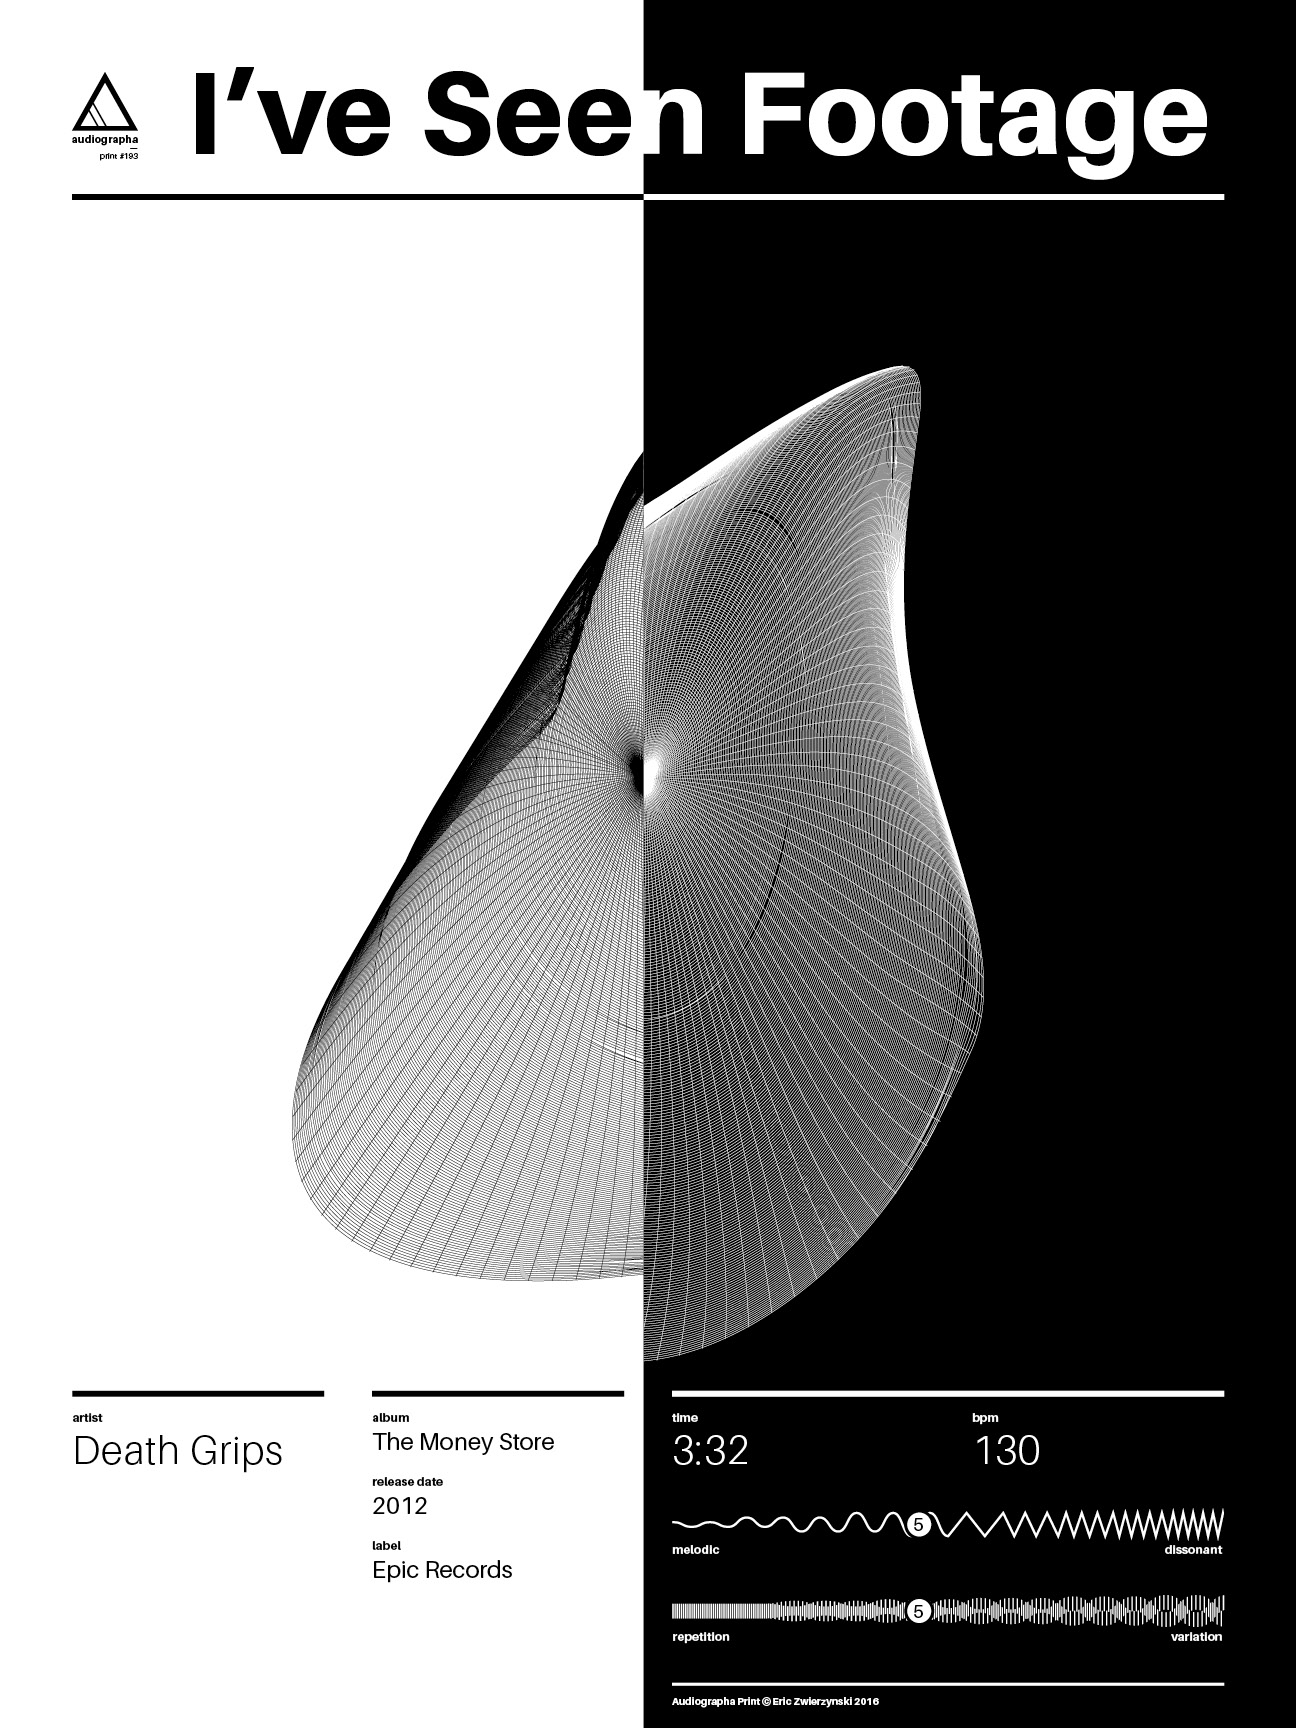 a193_deathgrips